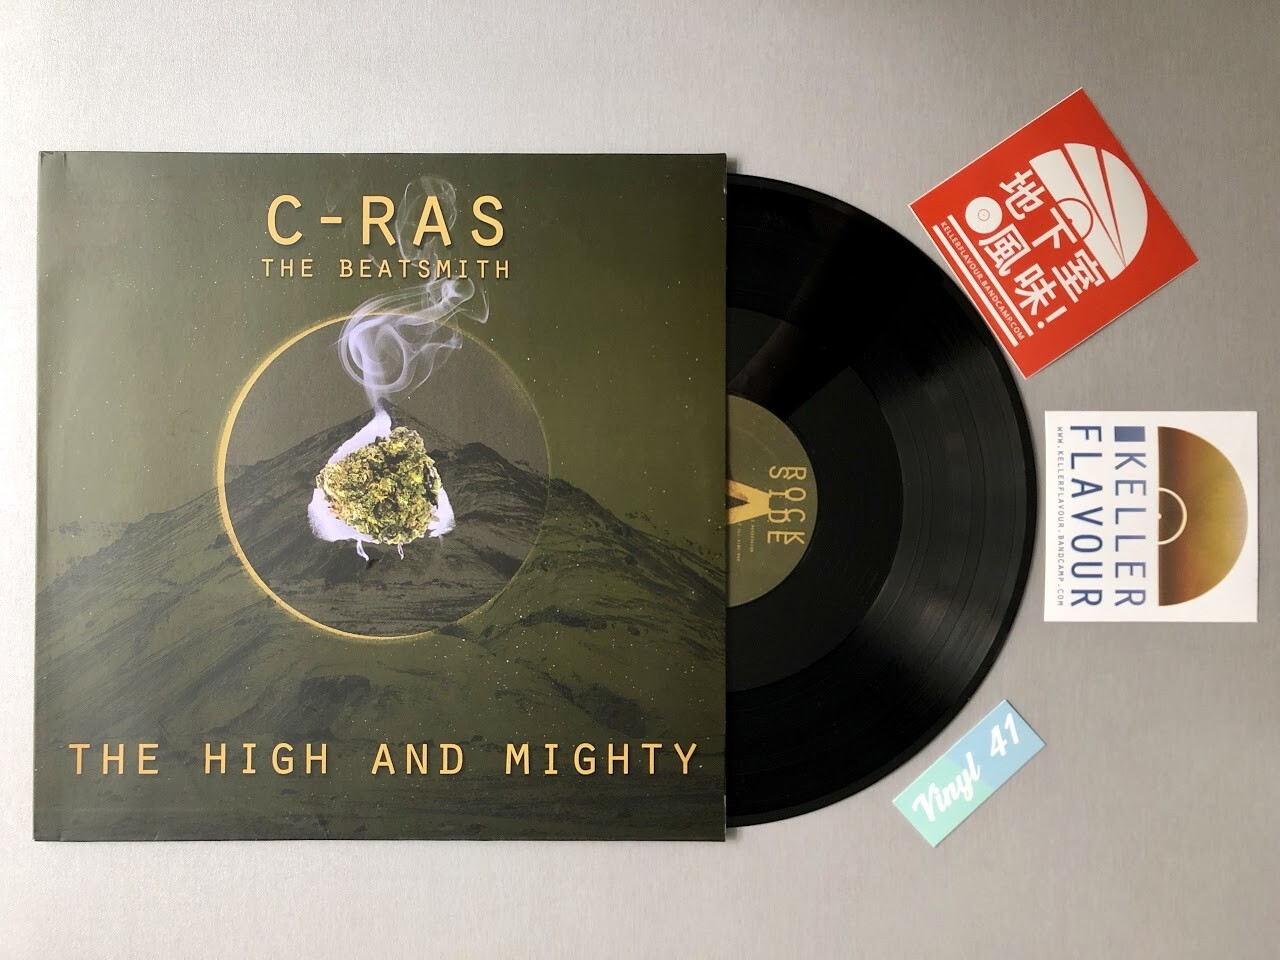 C-Ras the Beatsmith - The High & Mighty